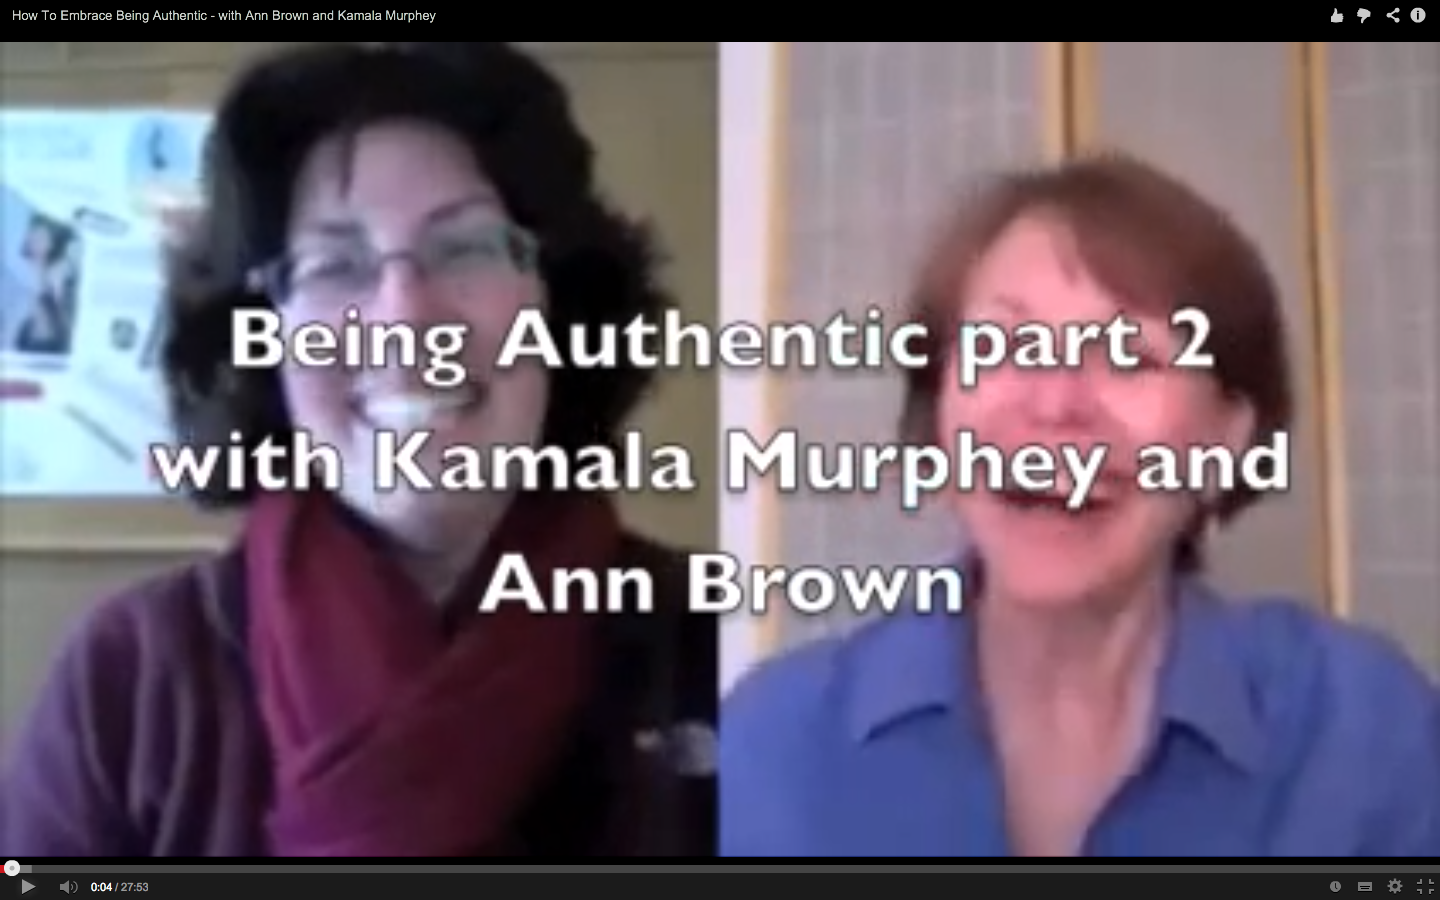 How Can We Embrace Being Authentic?